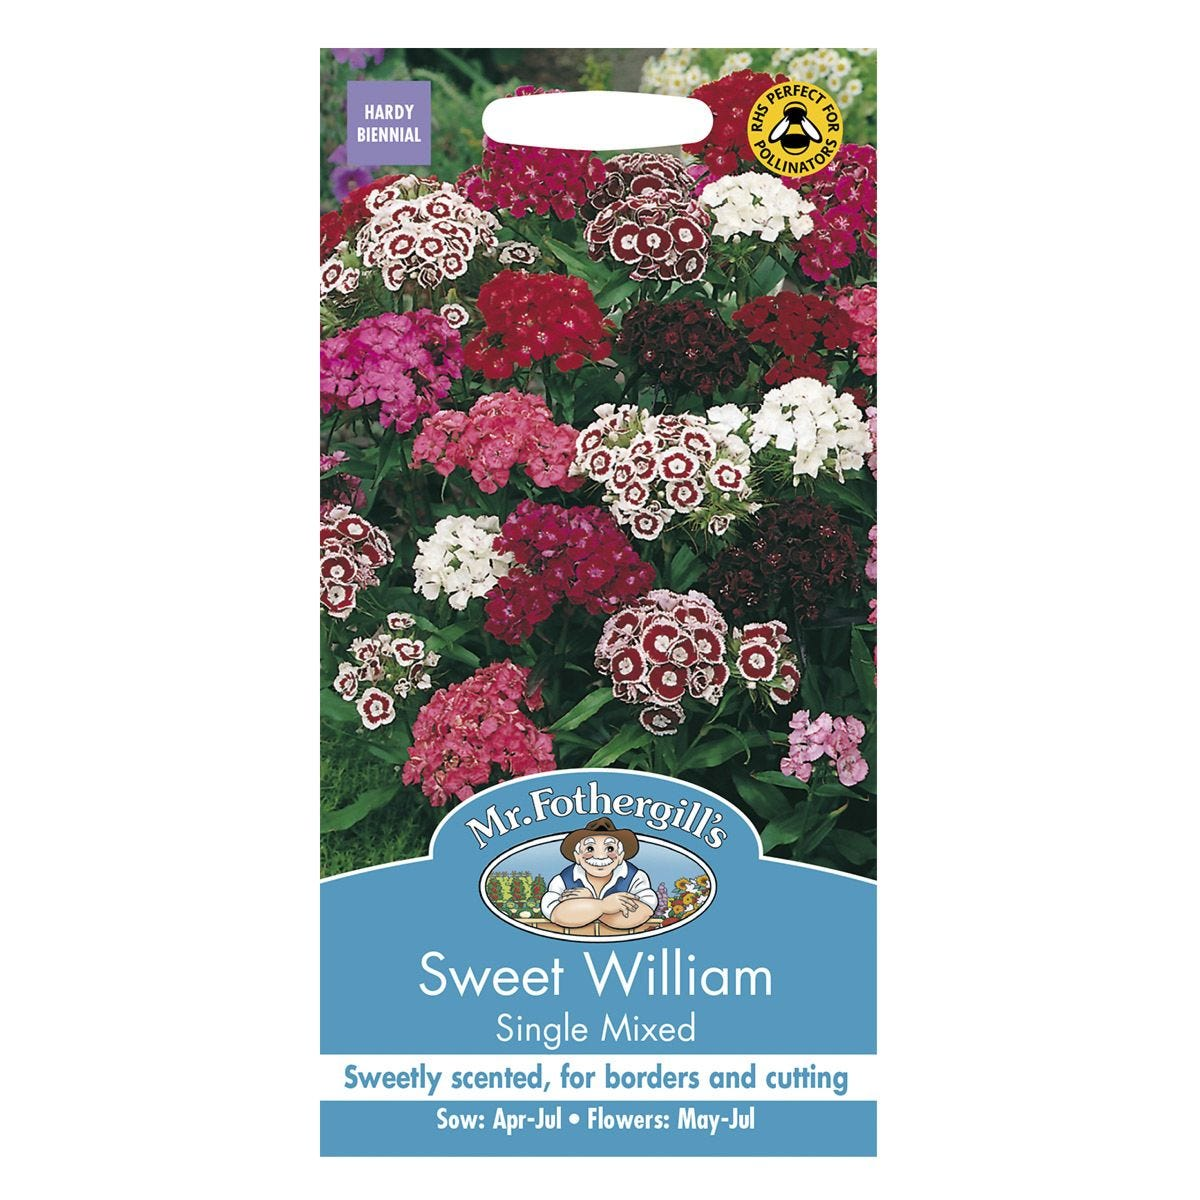 Mr Fothergill's Sweet William Single Mixed Seeds